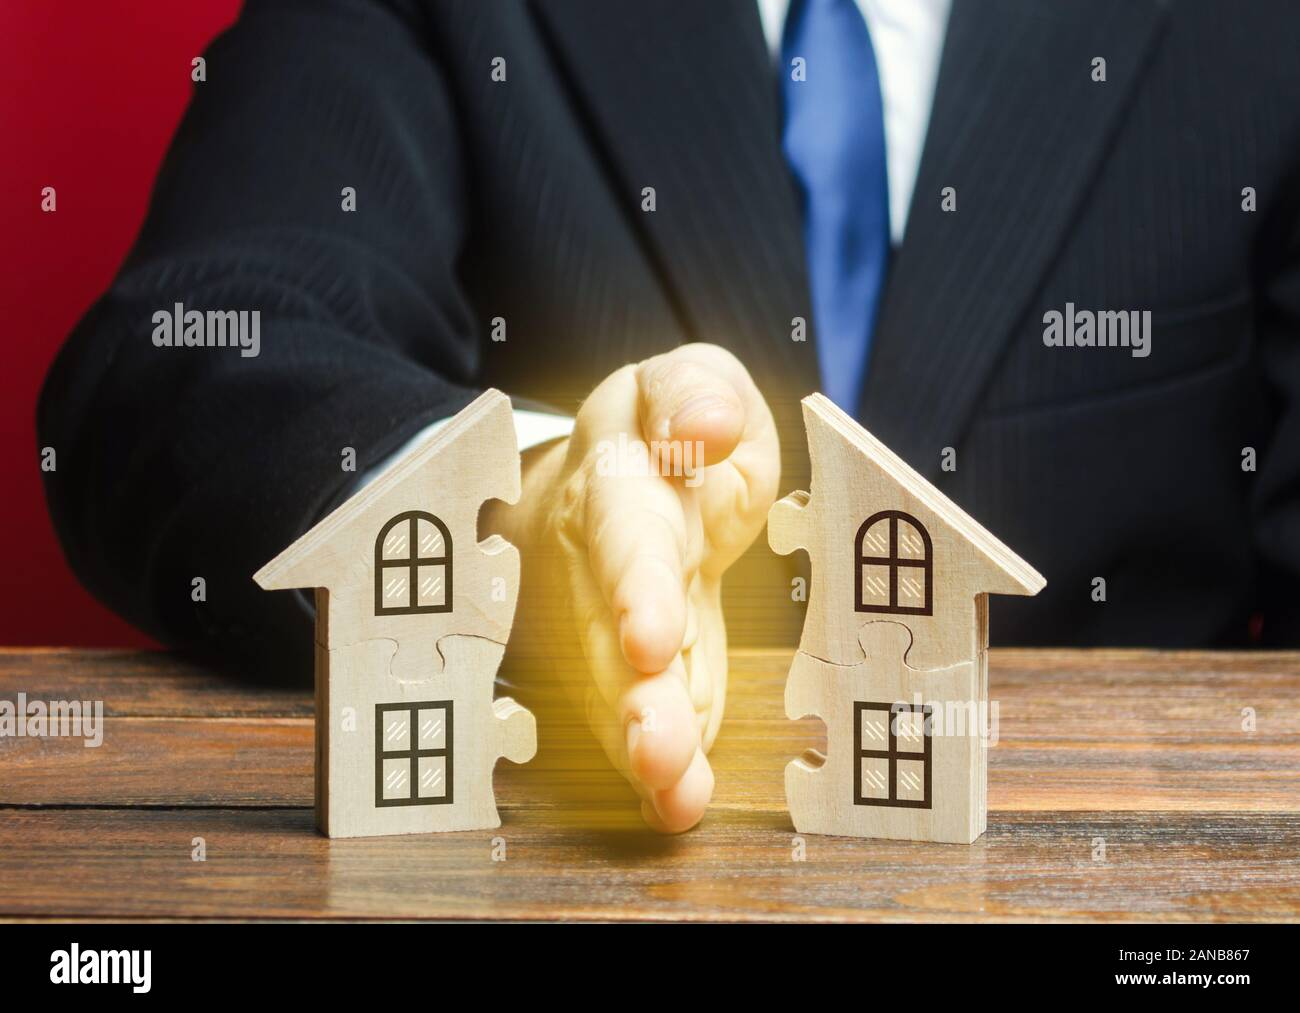 Lawyer divides the house into two equal parts in a divorce process. Protection of rights. Conflict resolution. Court, justice. Disputes over fair divi Stock Photo